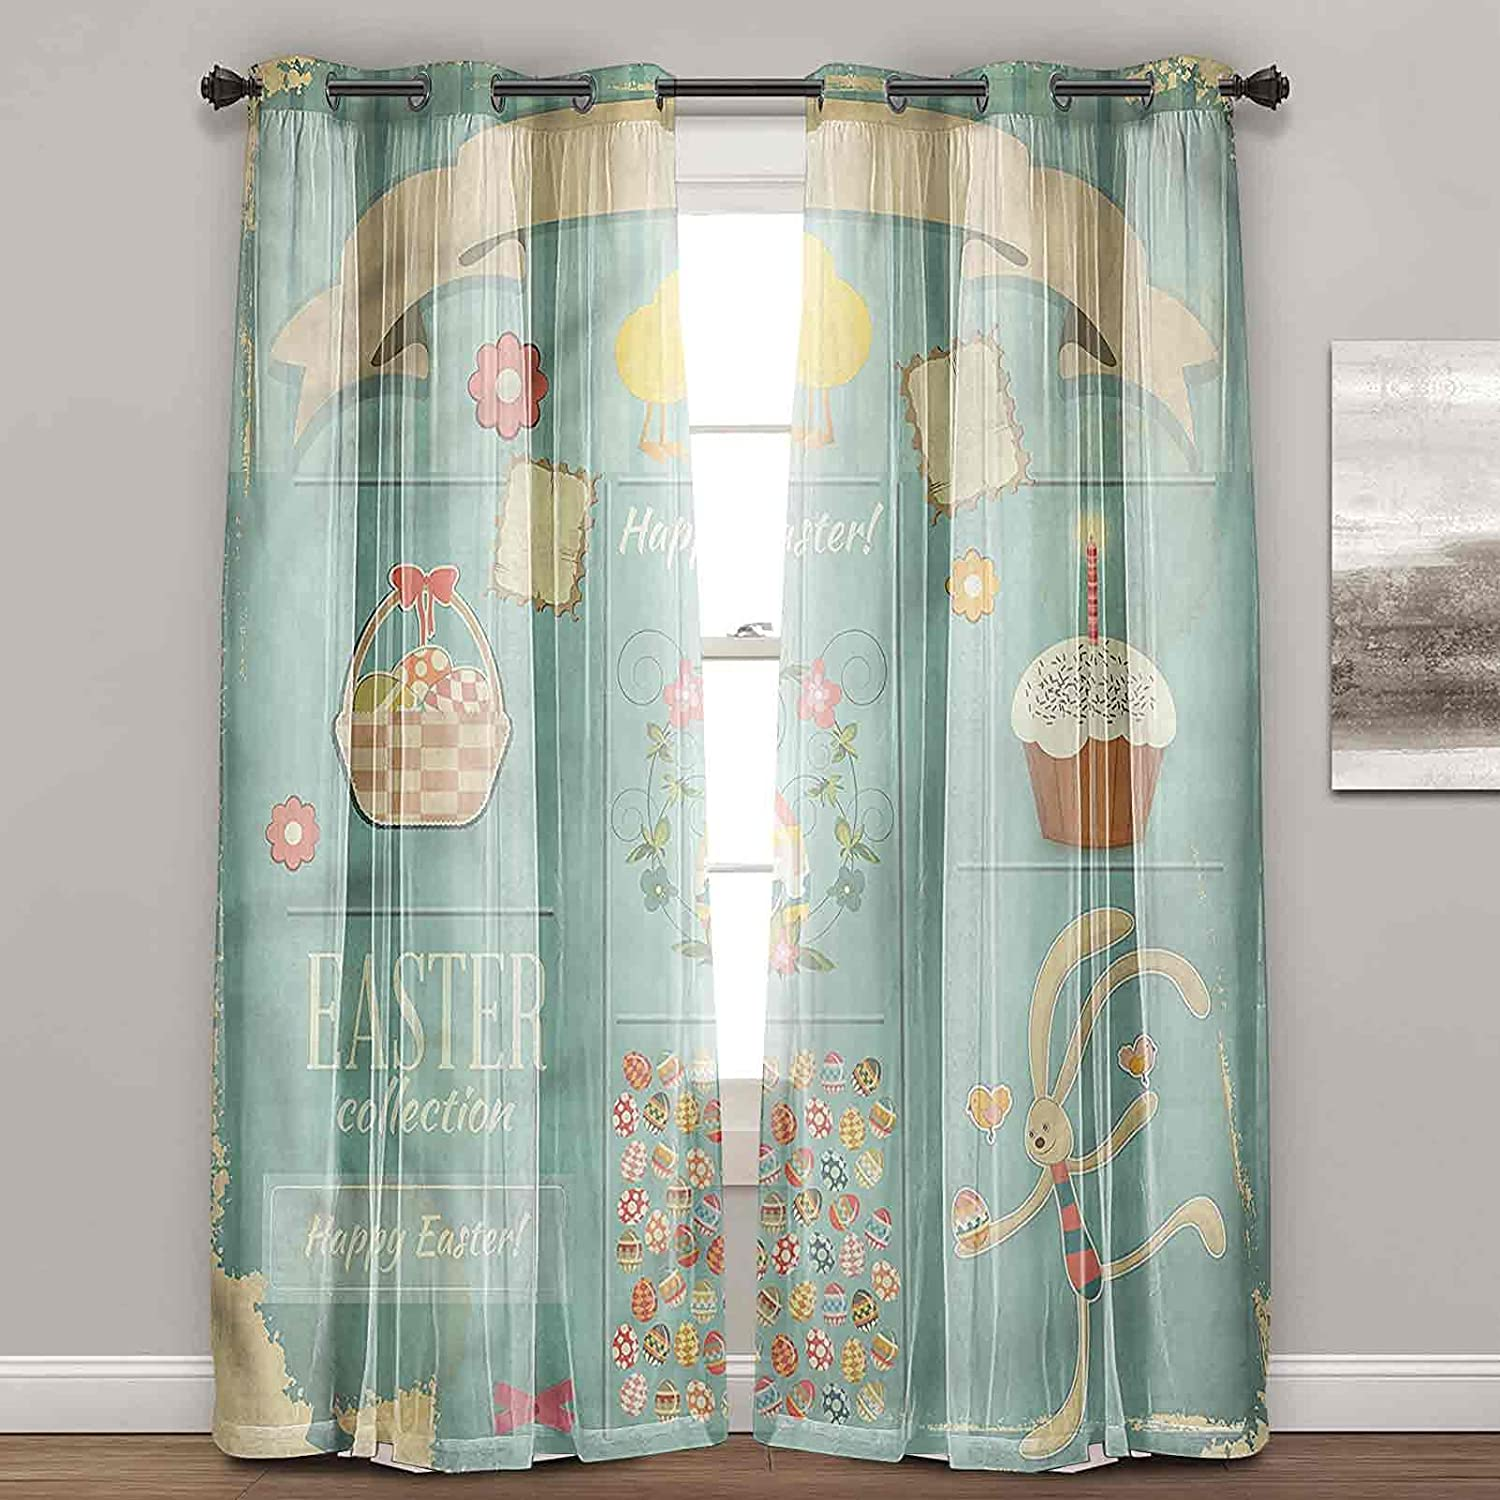 Financial sales sale Window Curtains for List price Bedroom Easter Eggs Rus Basket and Cupcake